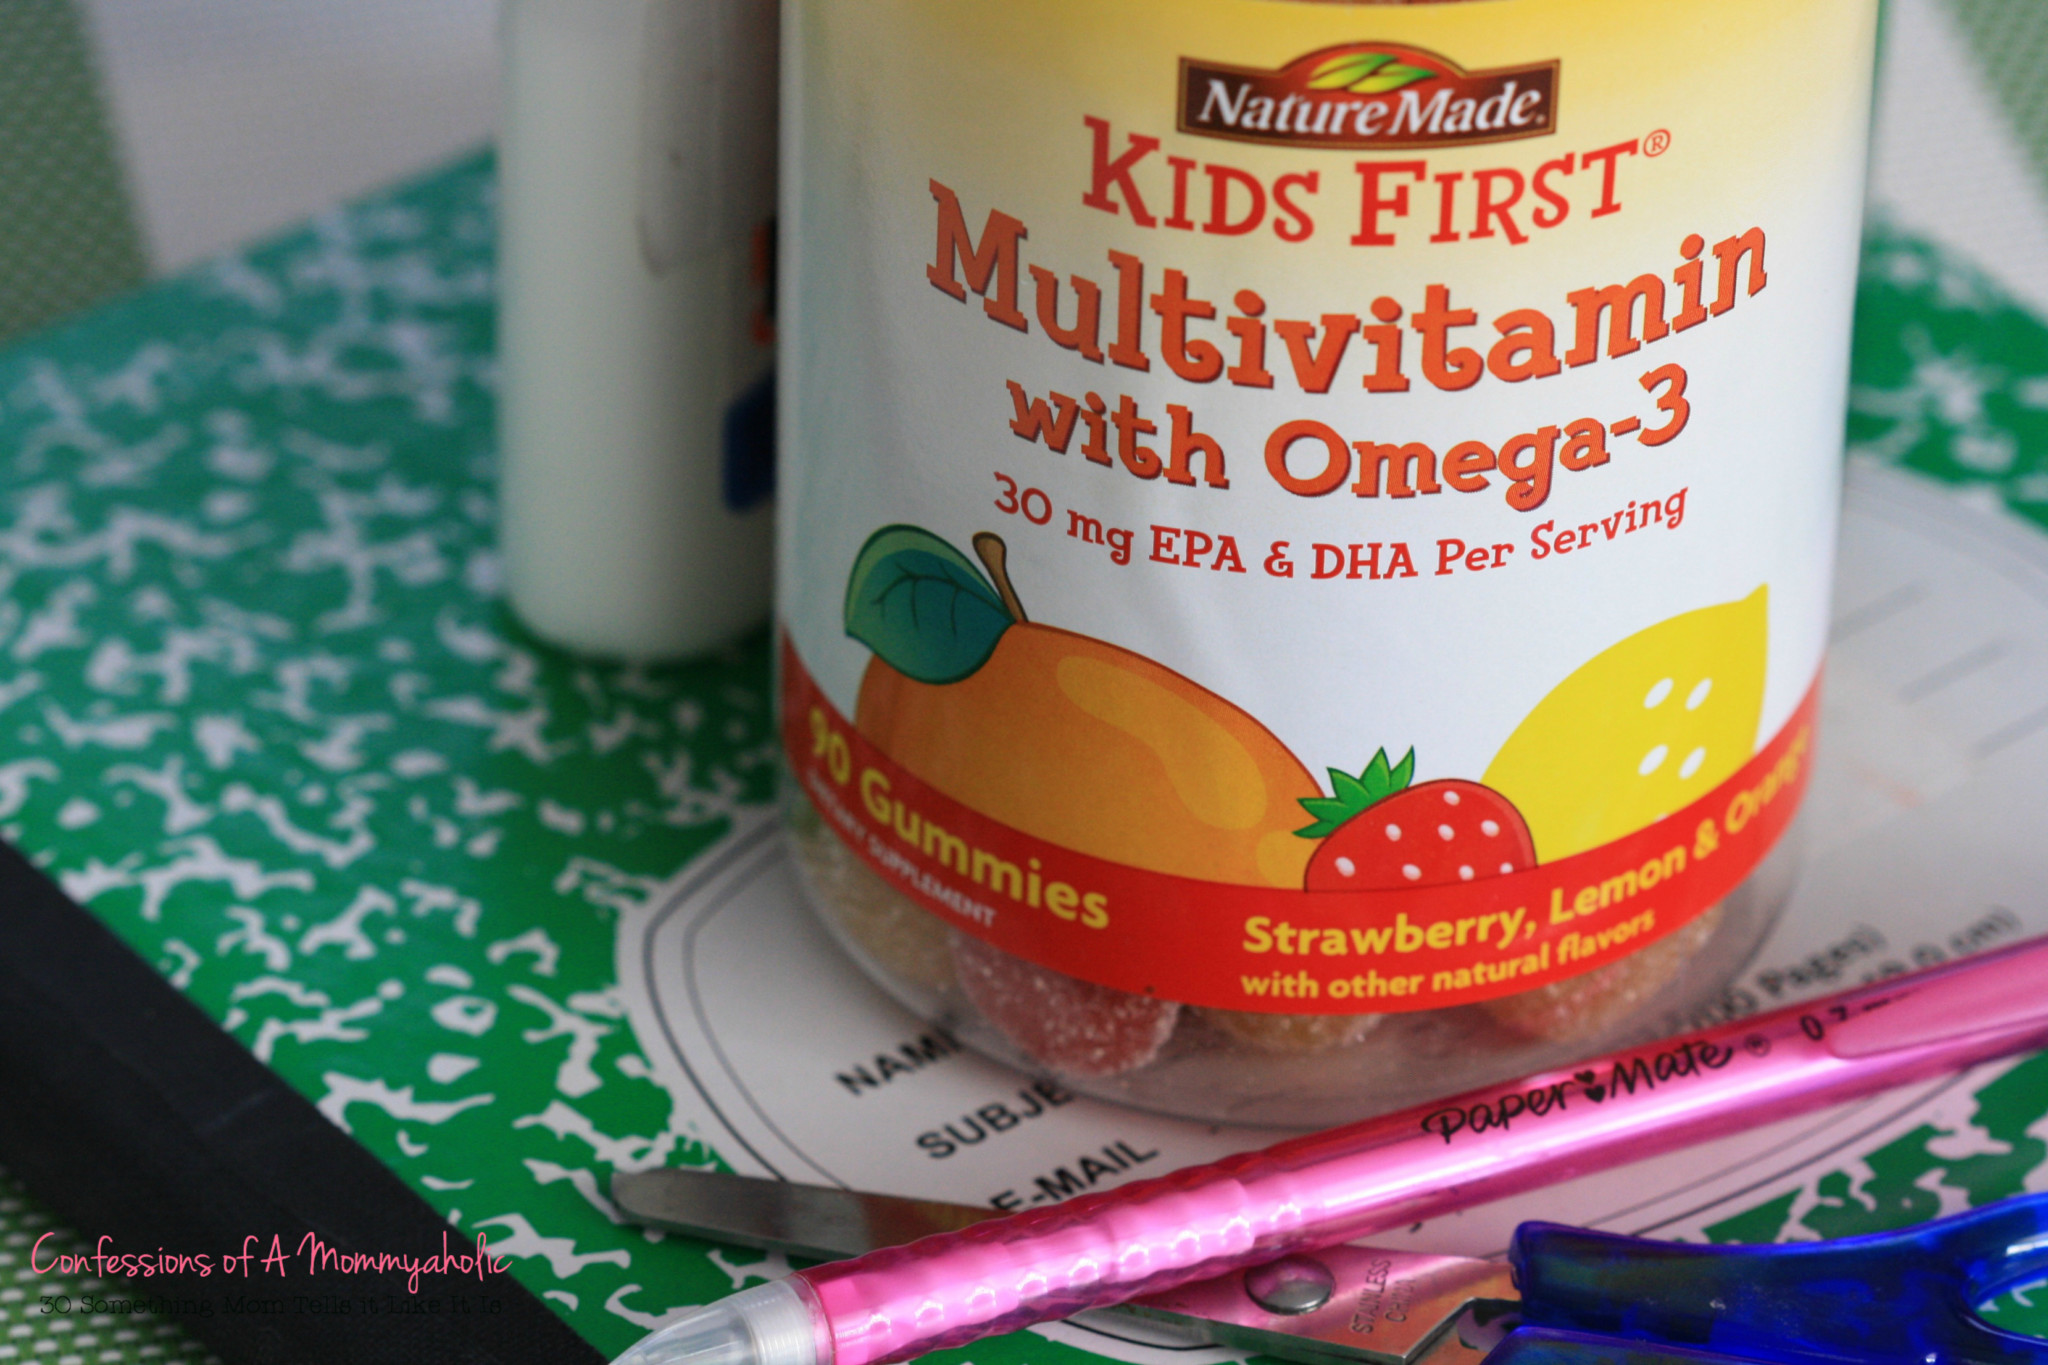 Closeup of Nature Made Kids First Multivitamin